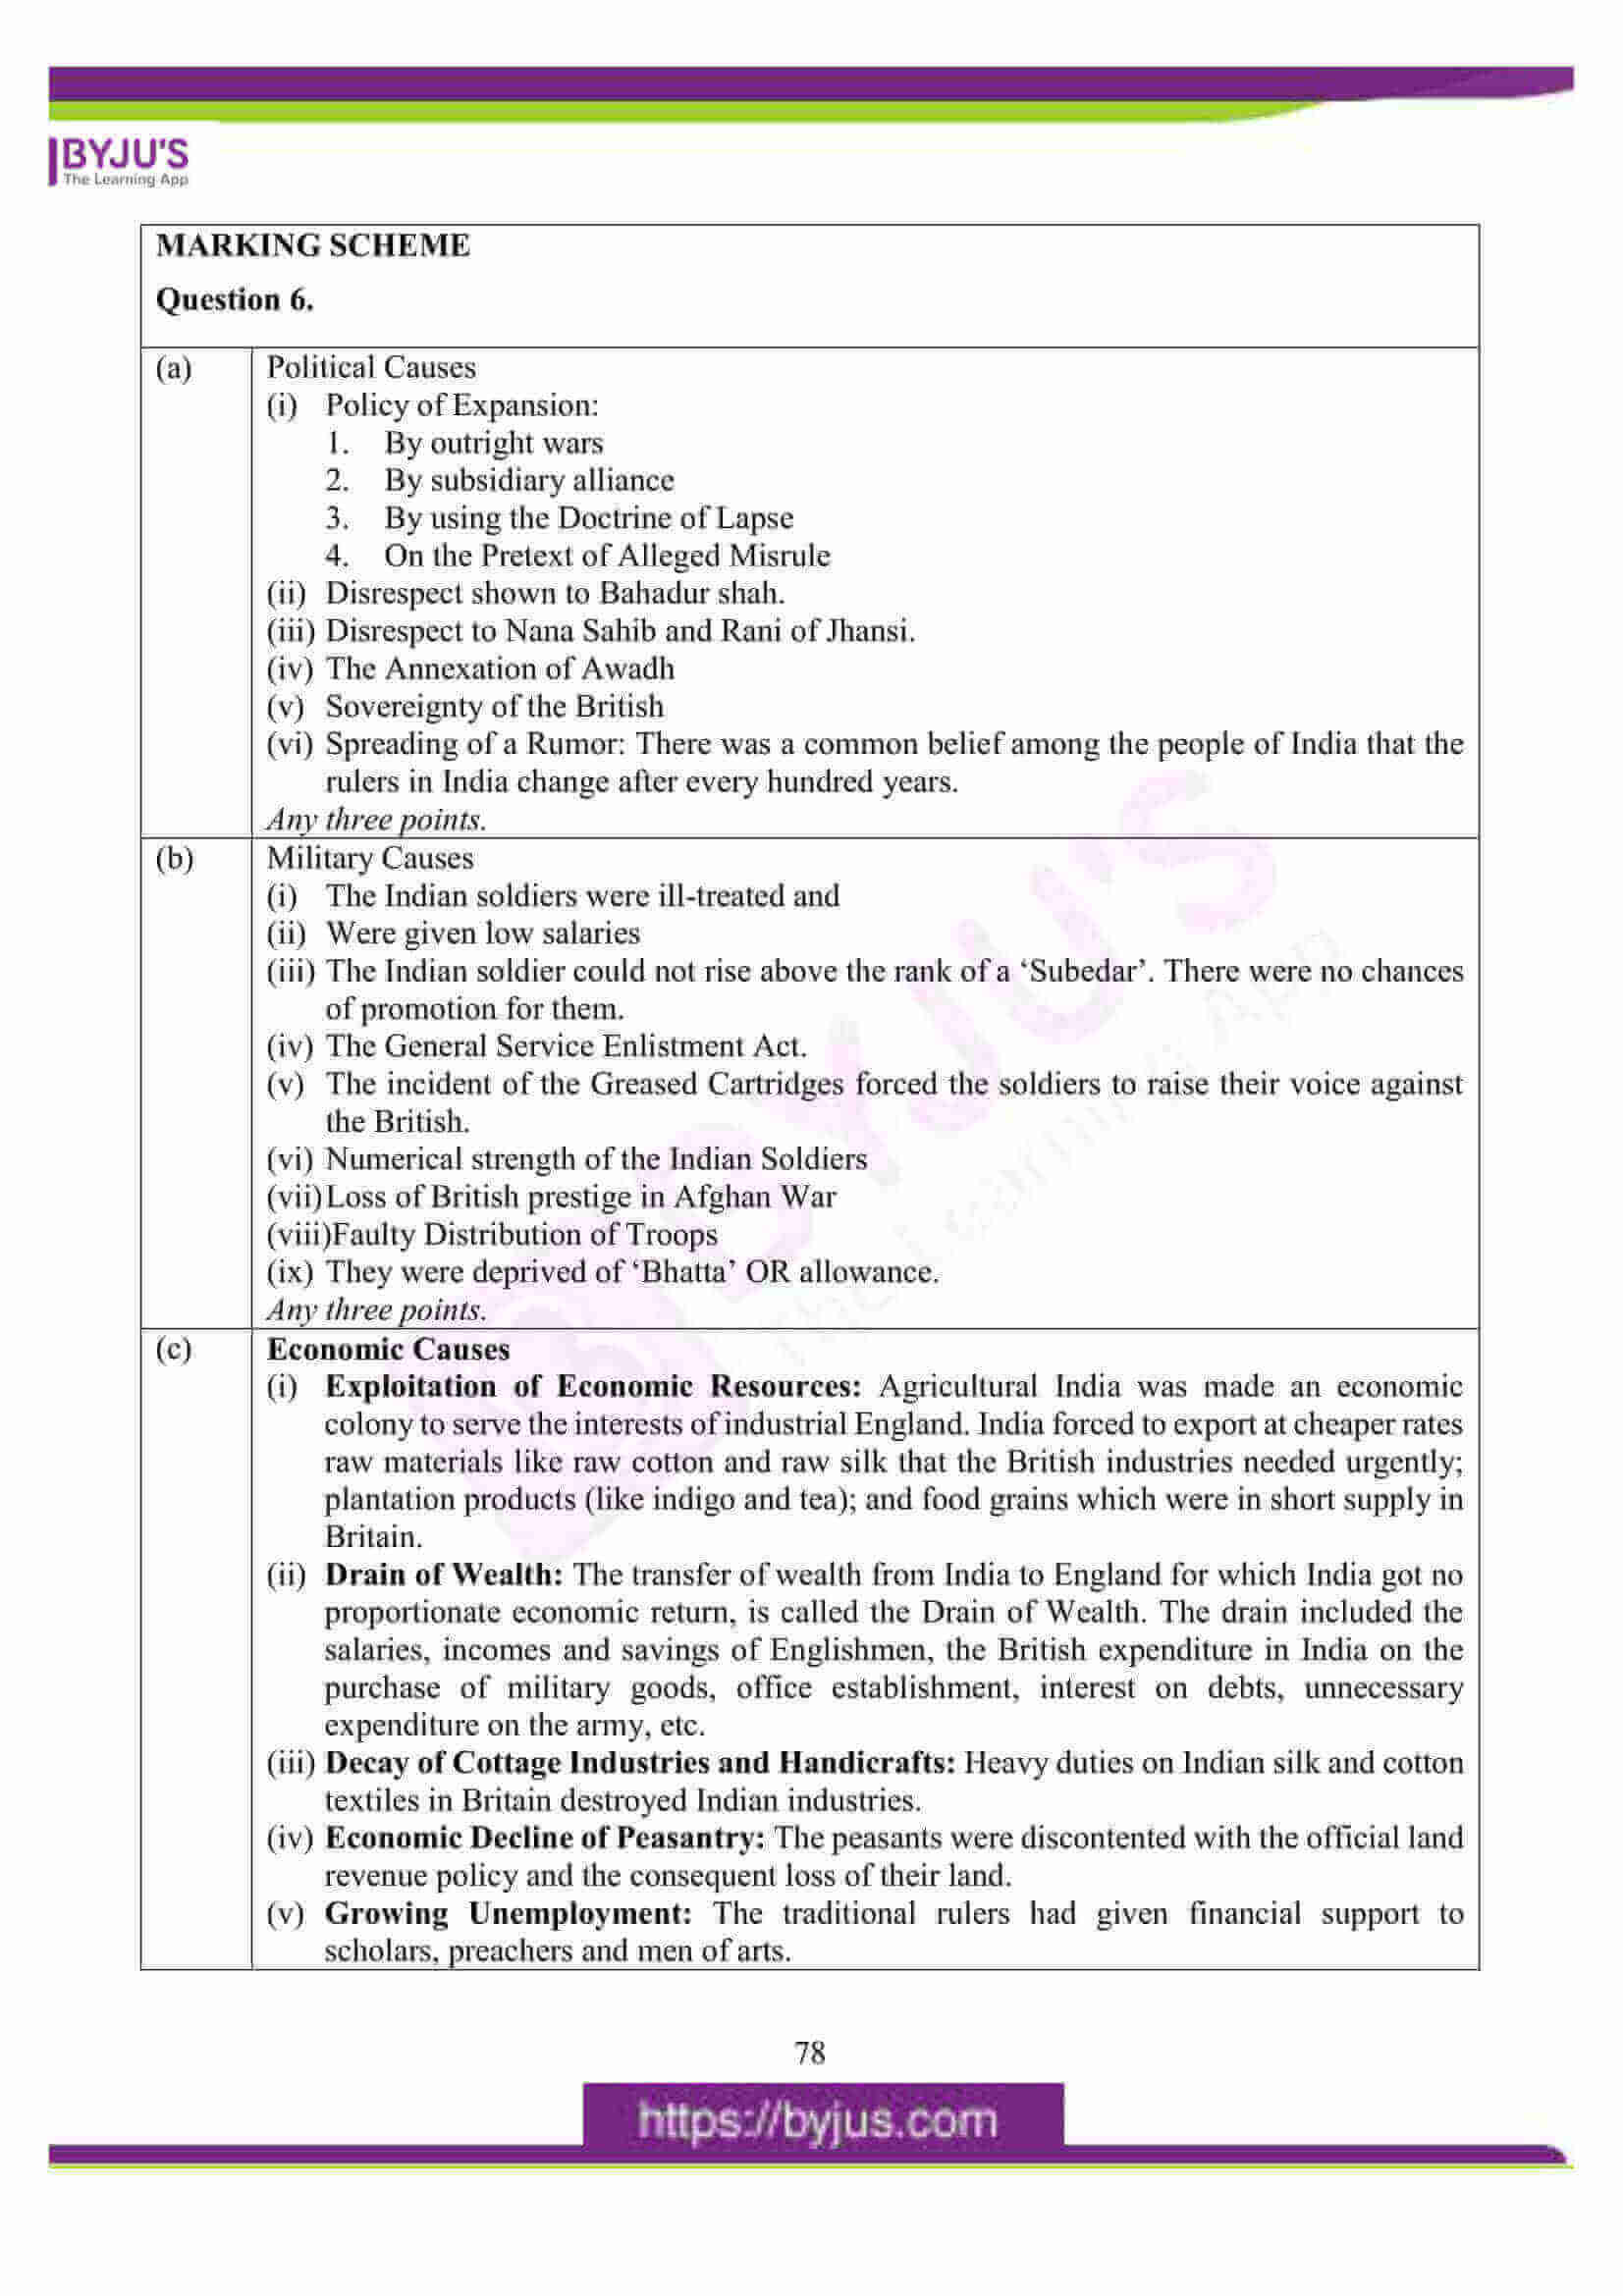 icse class 10 his and civics question paper solution 2016 11